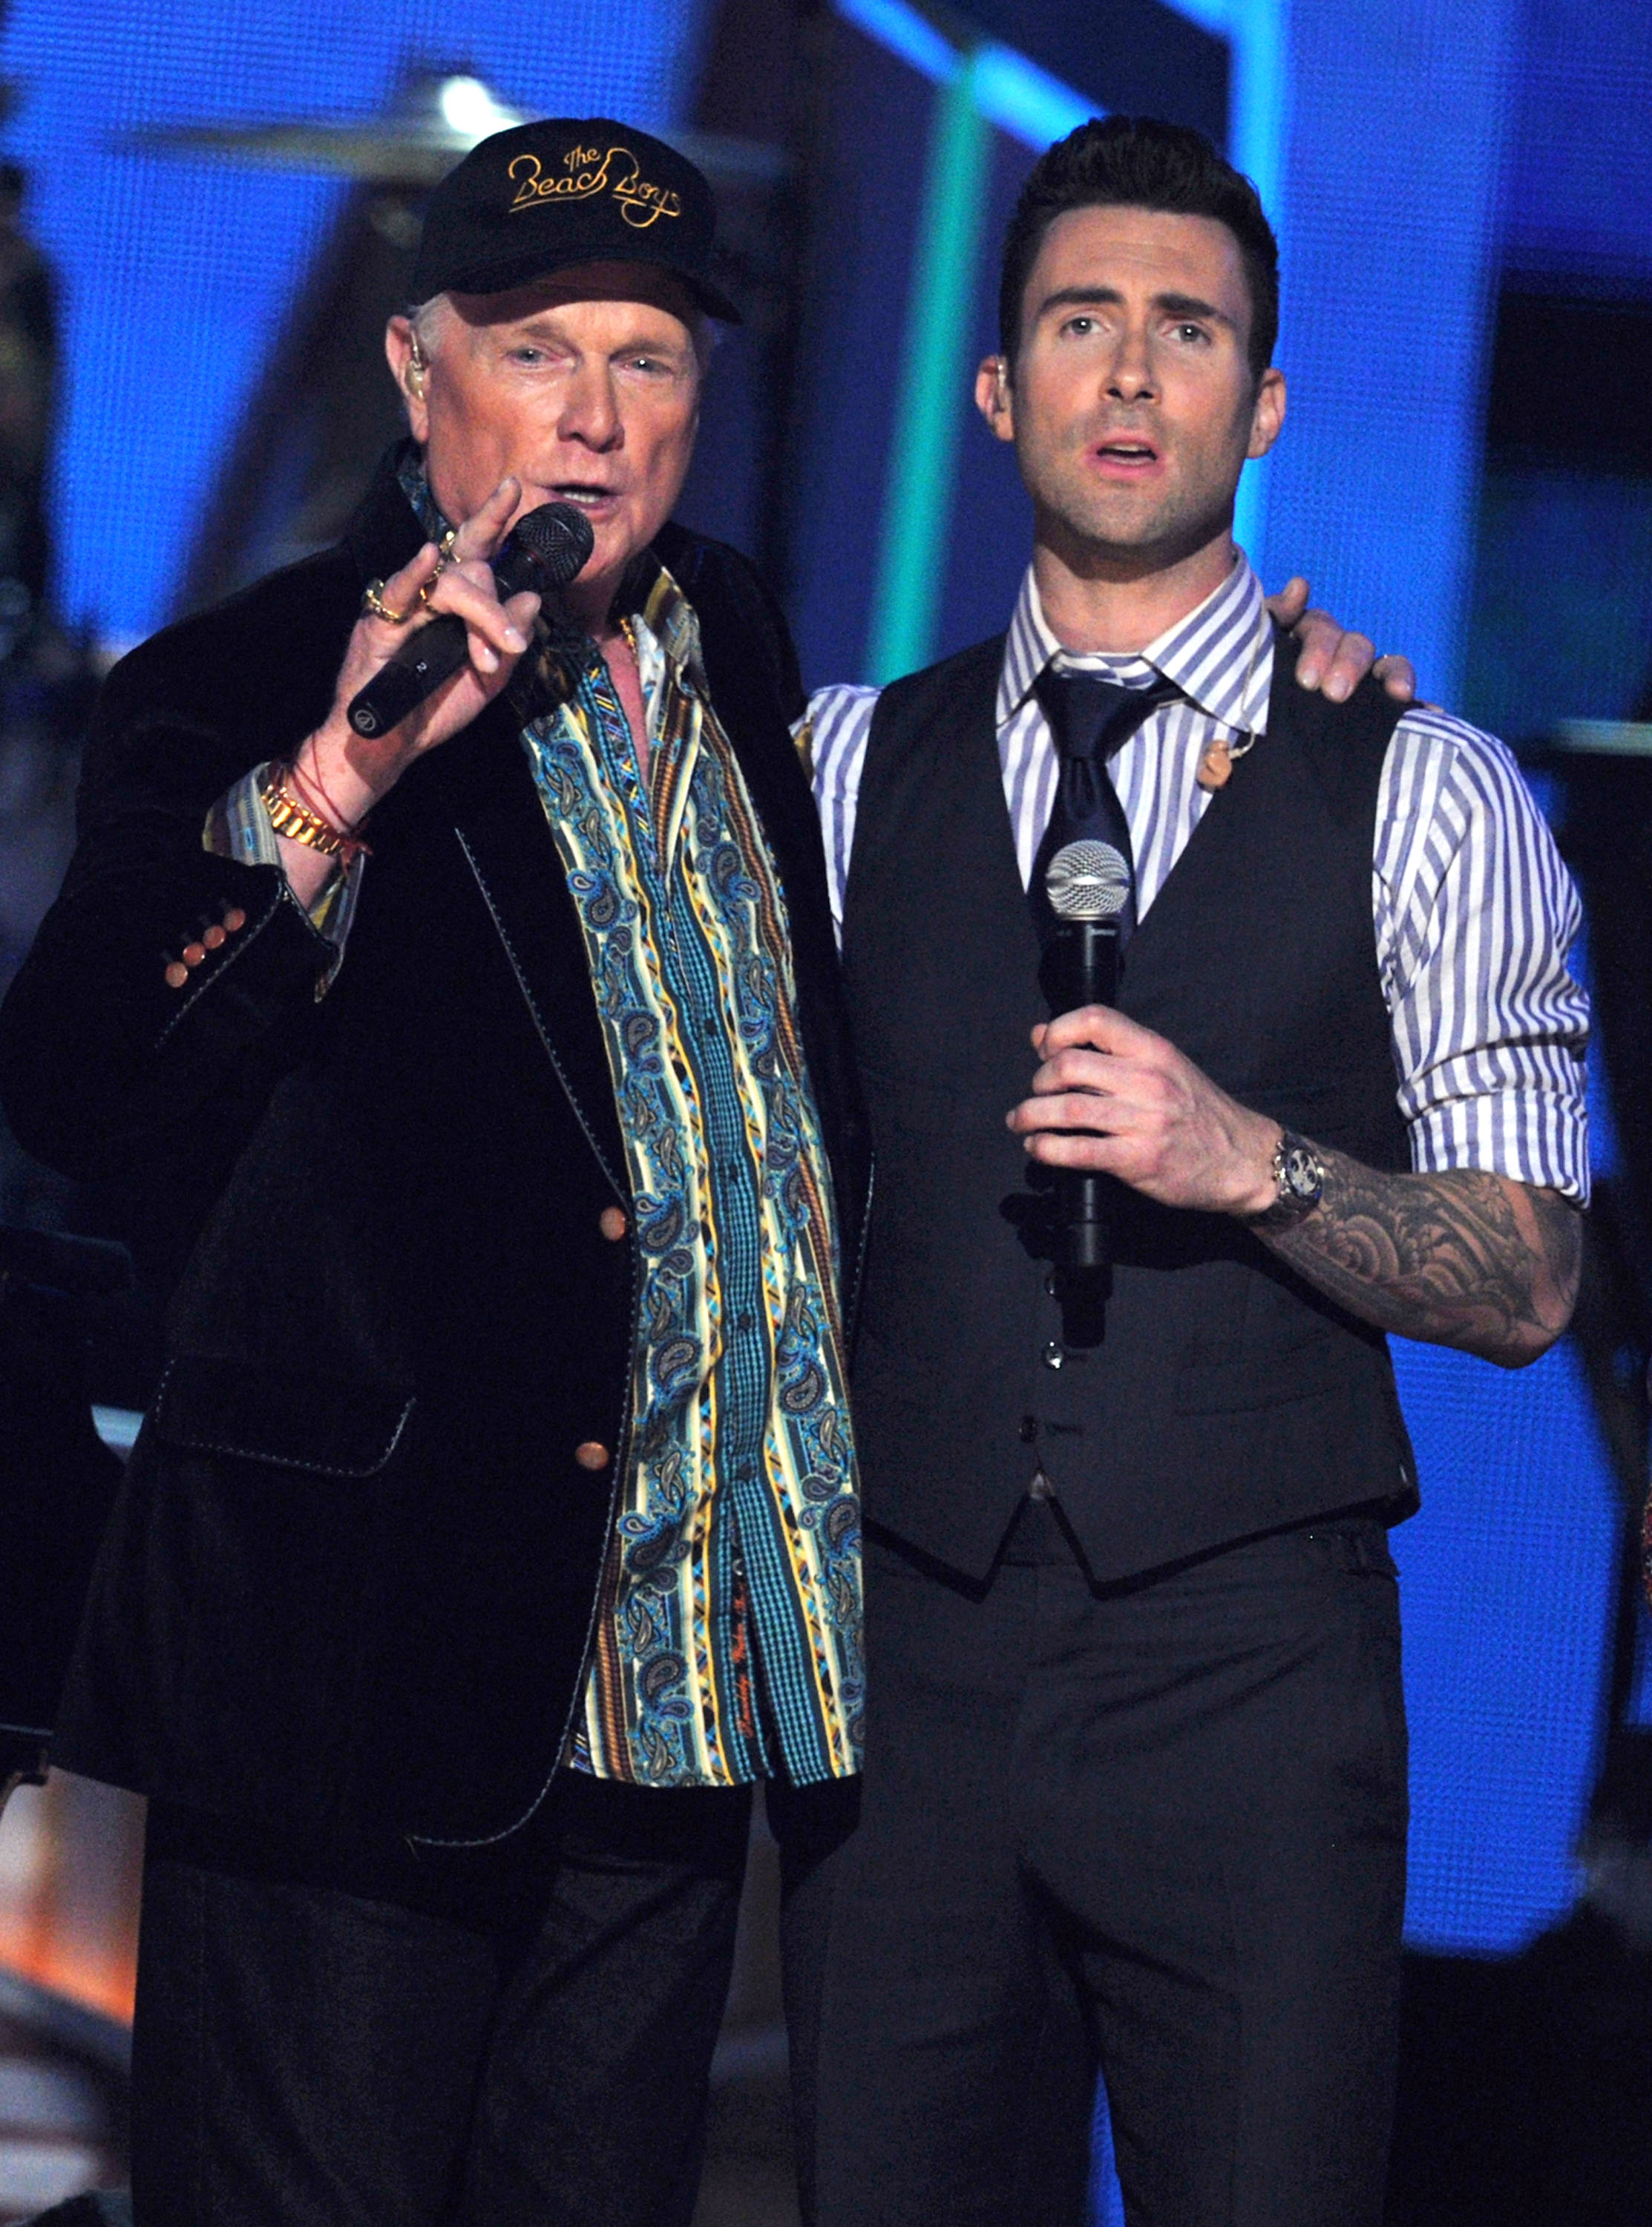 Mike Love and Adam Levine performed at the Grammys.